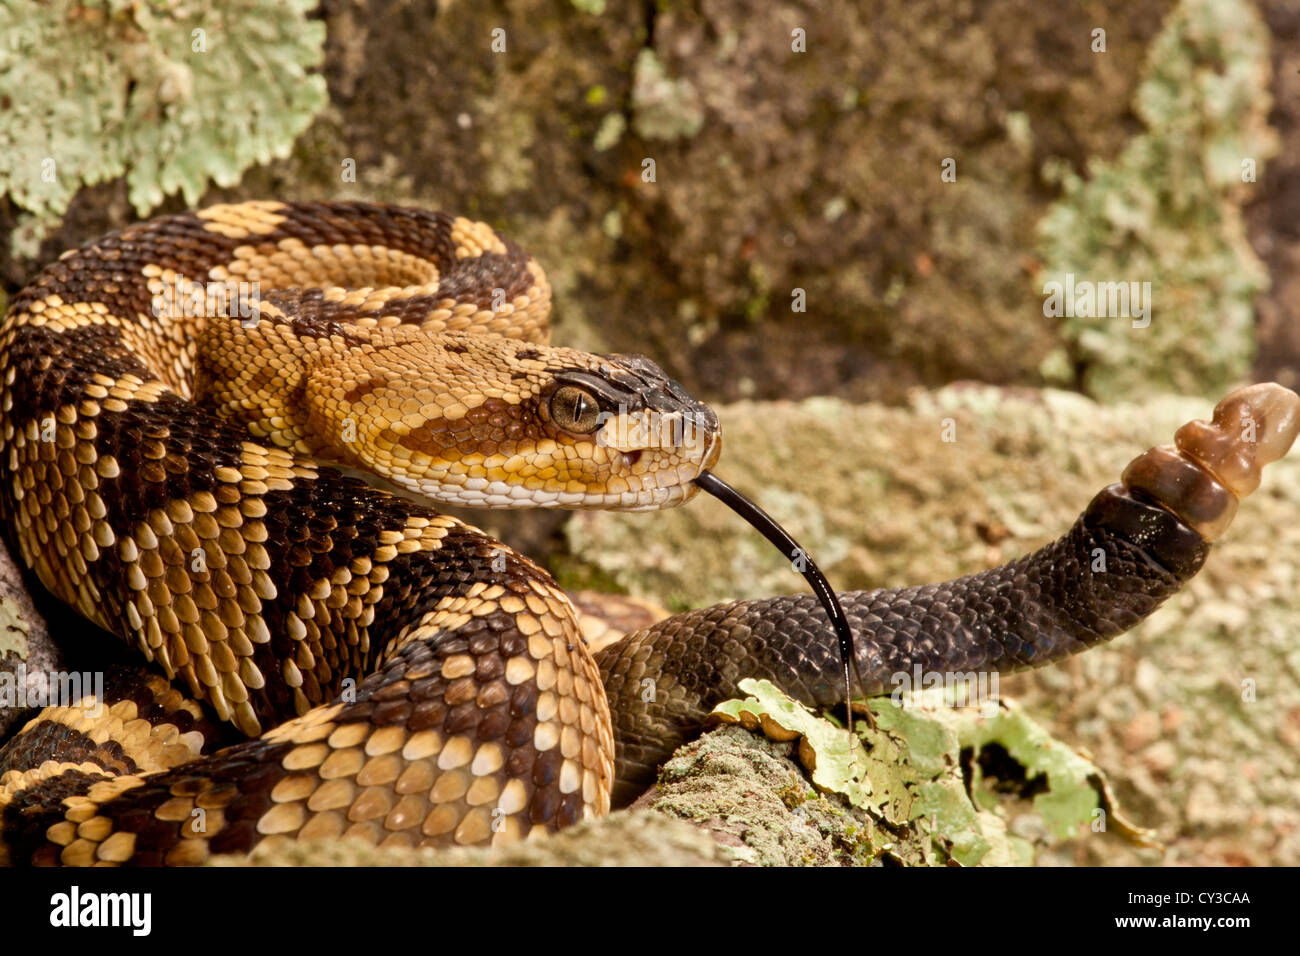 Northern Black-tailed Rattlesnake, Crotalus molossus, Native to Southwestern US Stock Photo